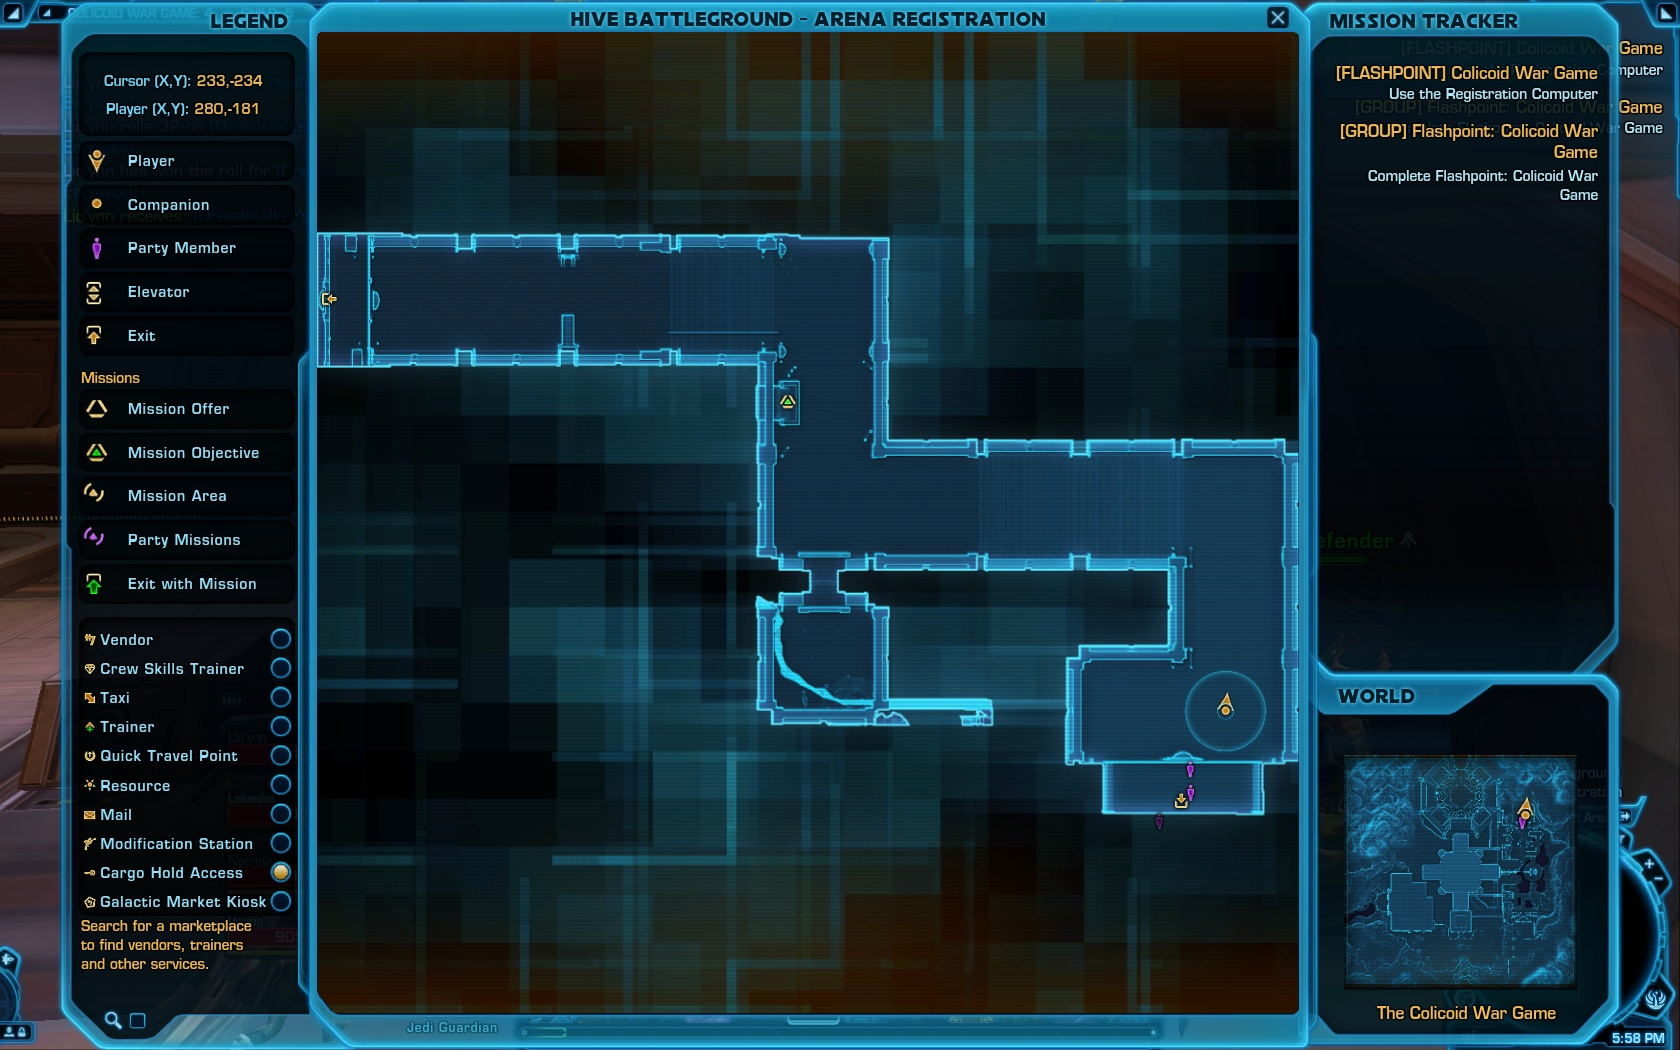 Colicoid War Games console map